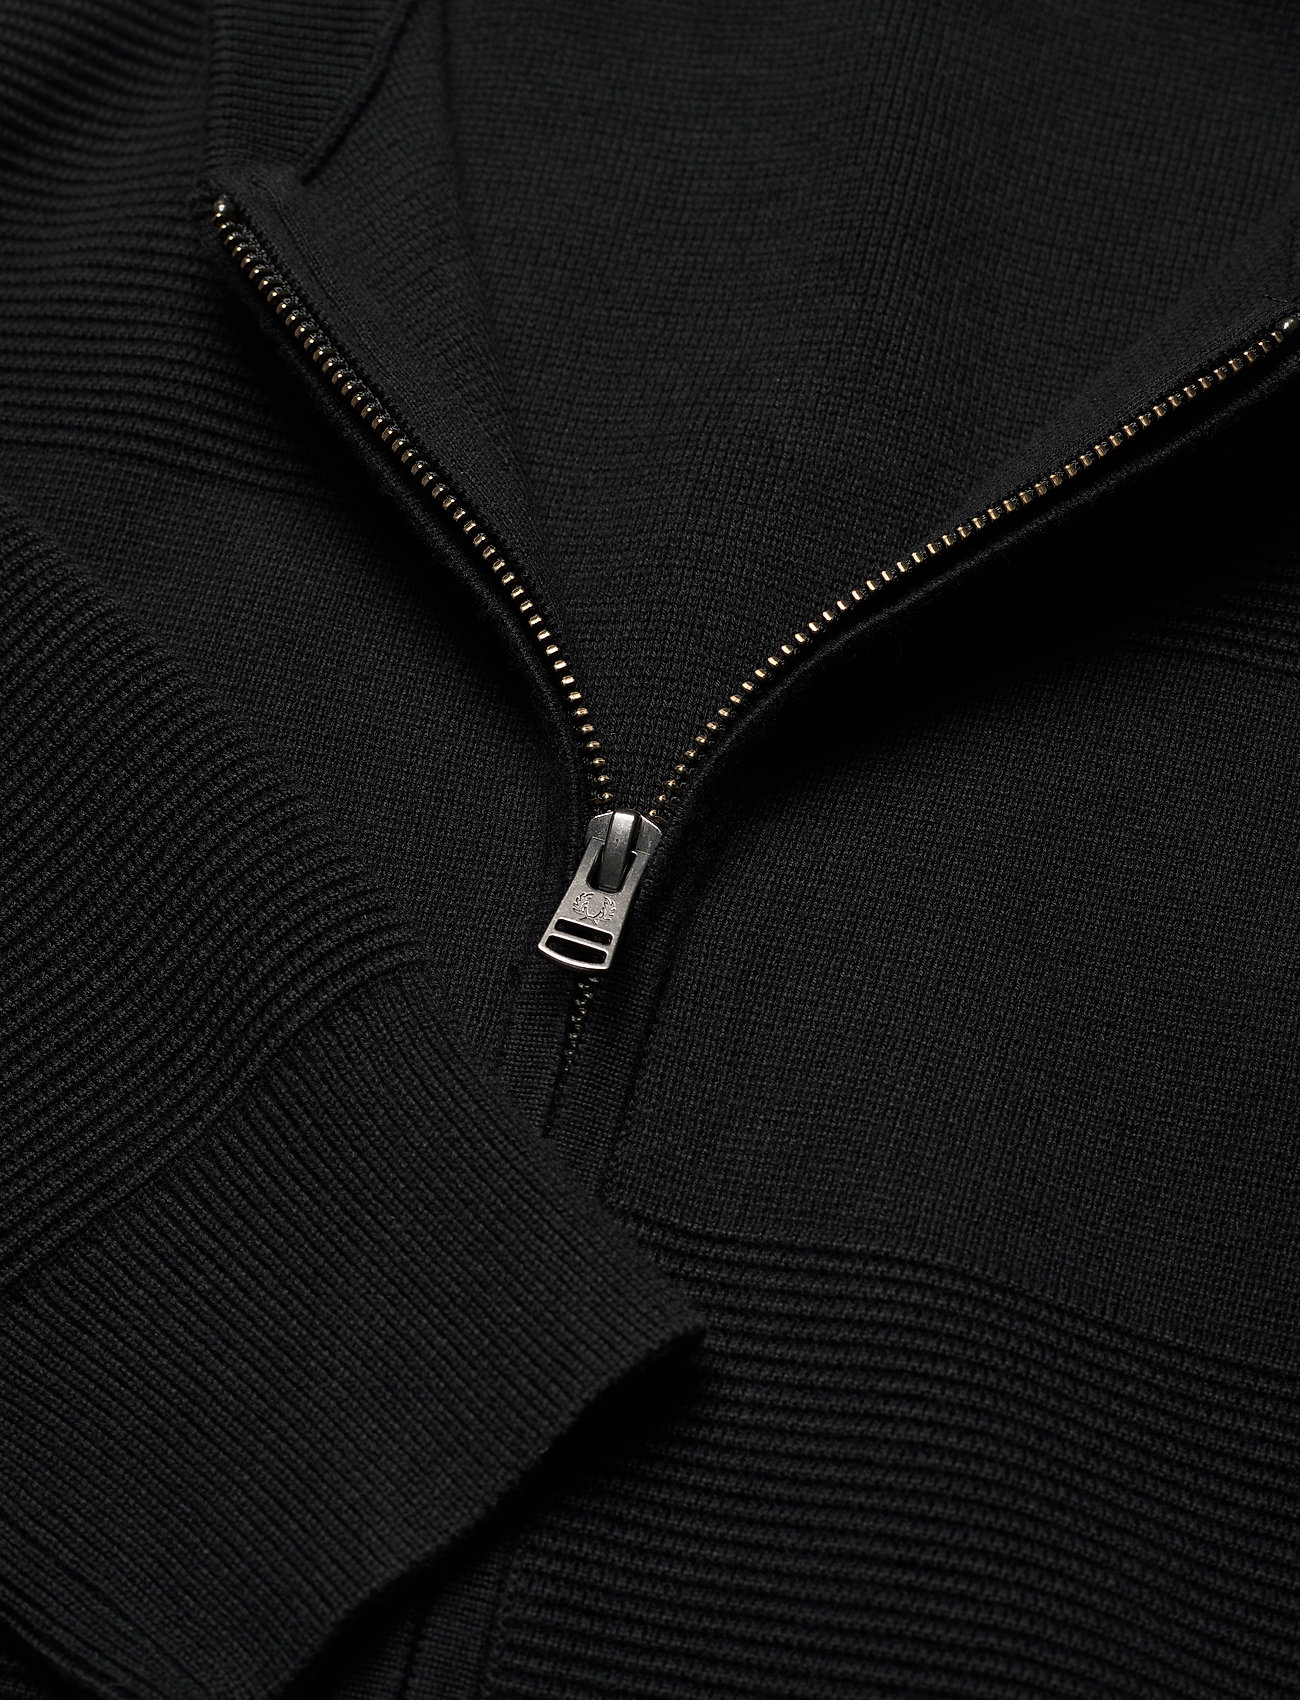 Fred Perry TEXTURED KNIT. BOMBER JKT - Strikkevarer BLACK - Menn Klær